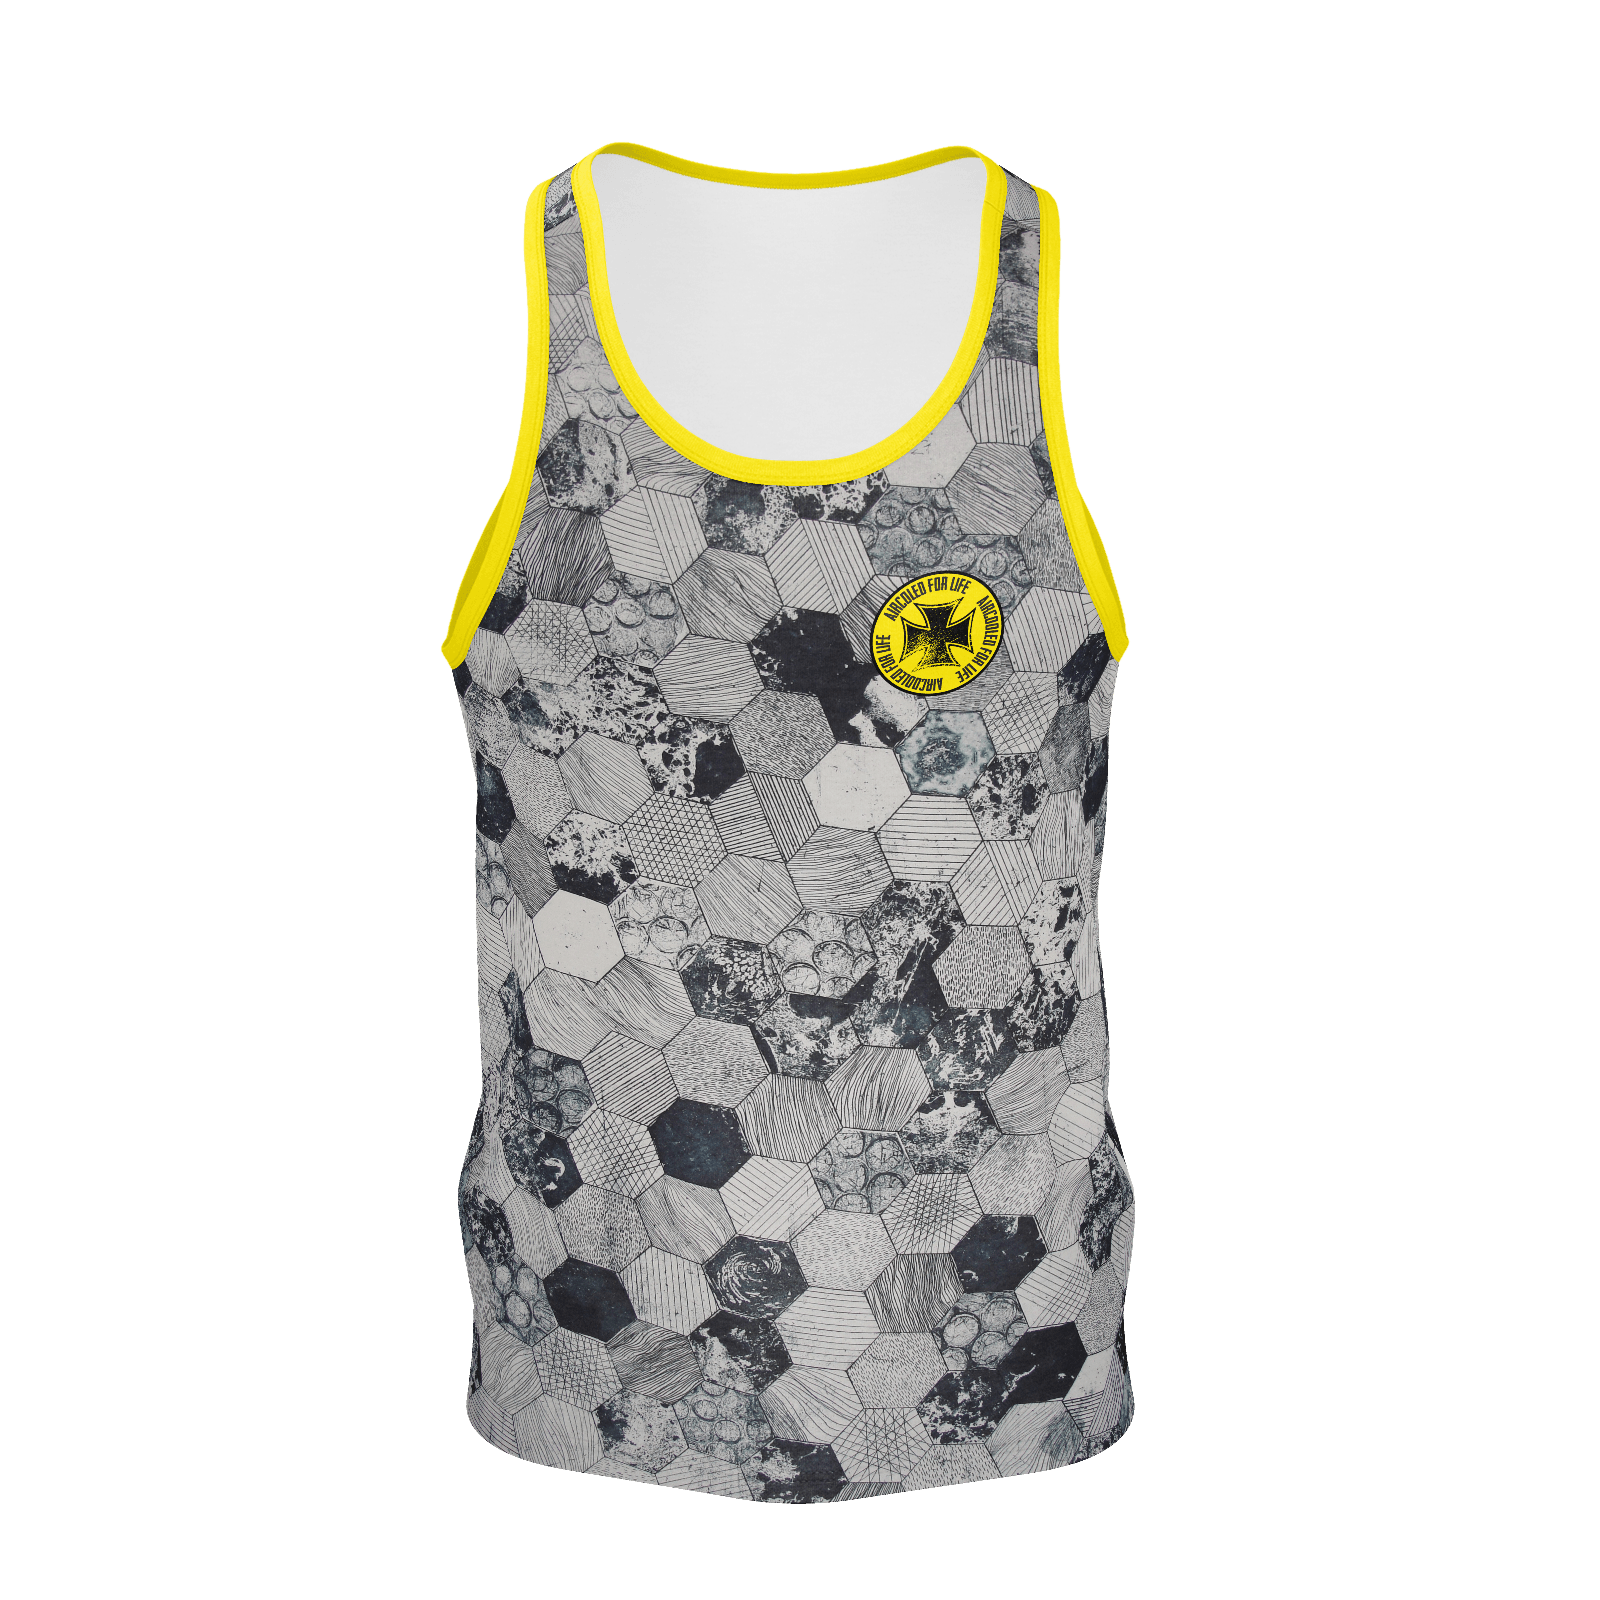 Aircooled For Life Iron Cross Men's Tank